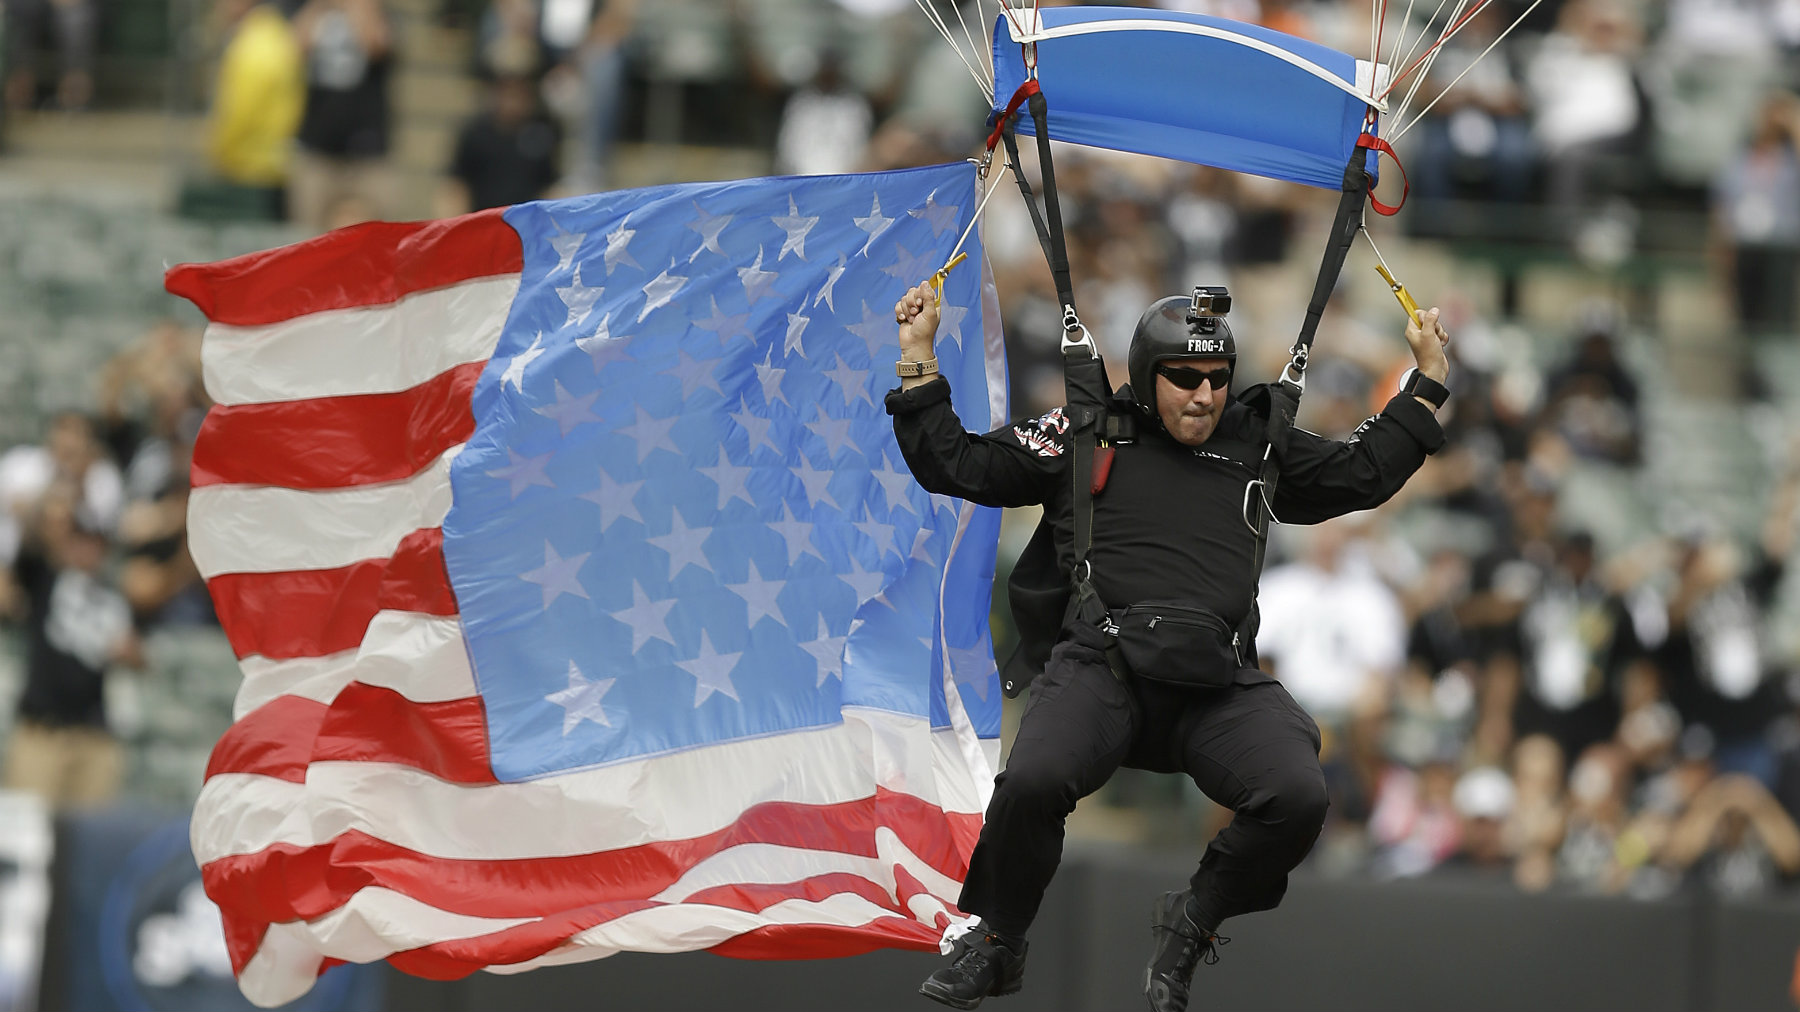 A man parachutes into O.co Coliseum with an American flag before an NFL football game between the Oakland Raiders and the Cincinnati Bengals in Oakland, California.